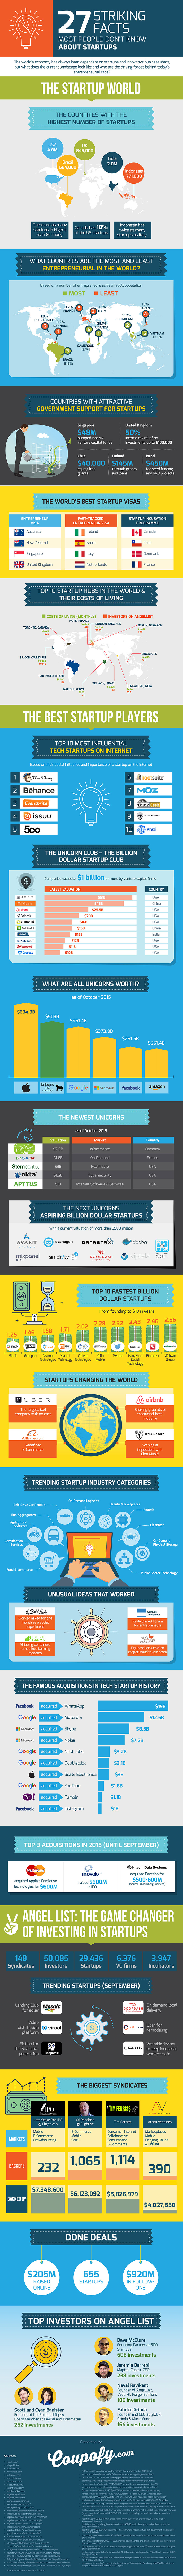 27 Startup Facts - infograpic by Coupofy